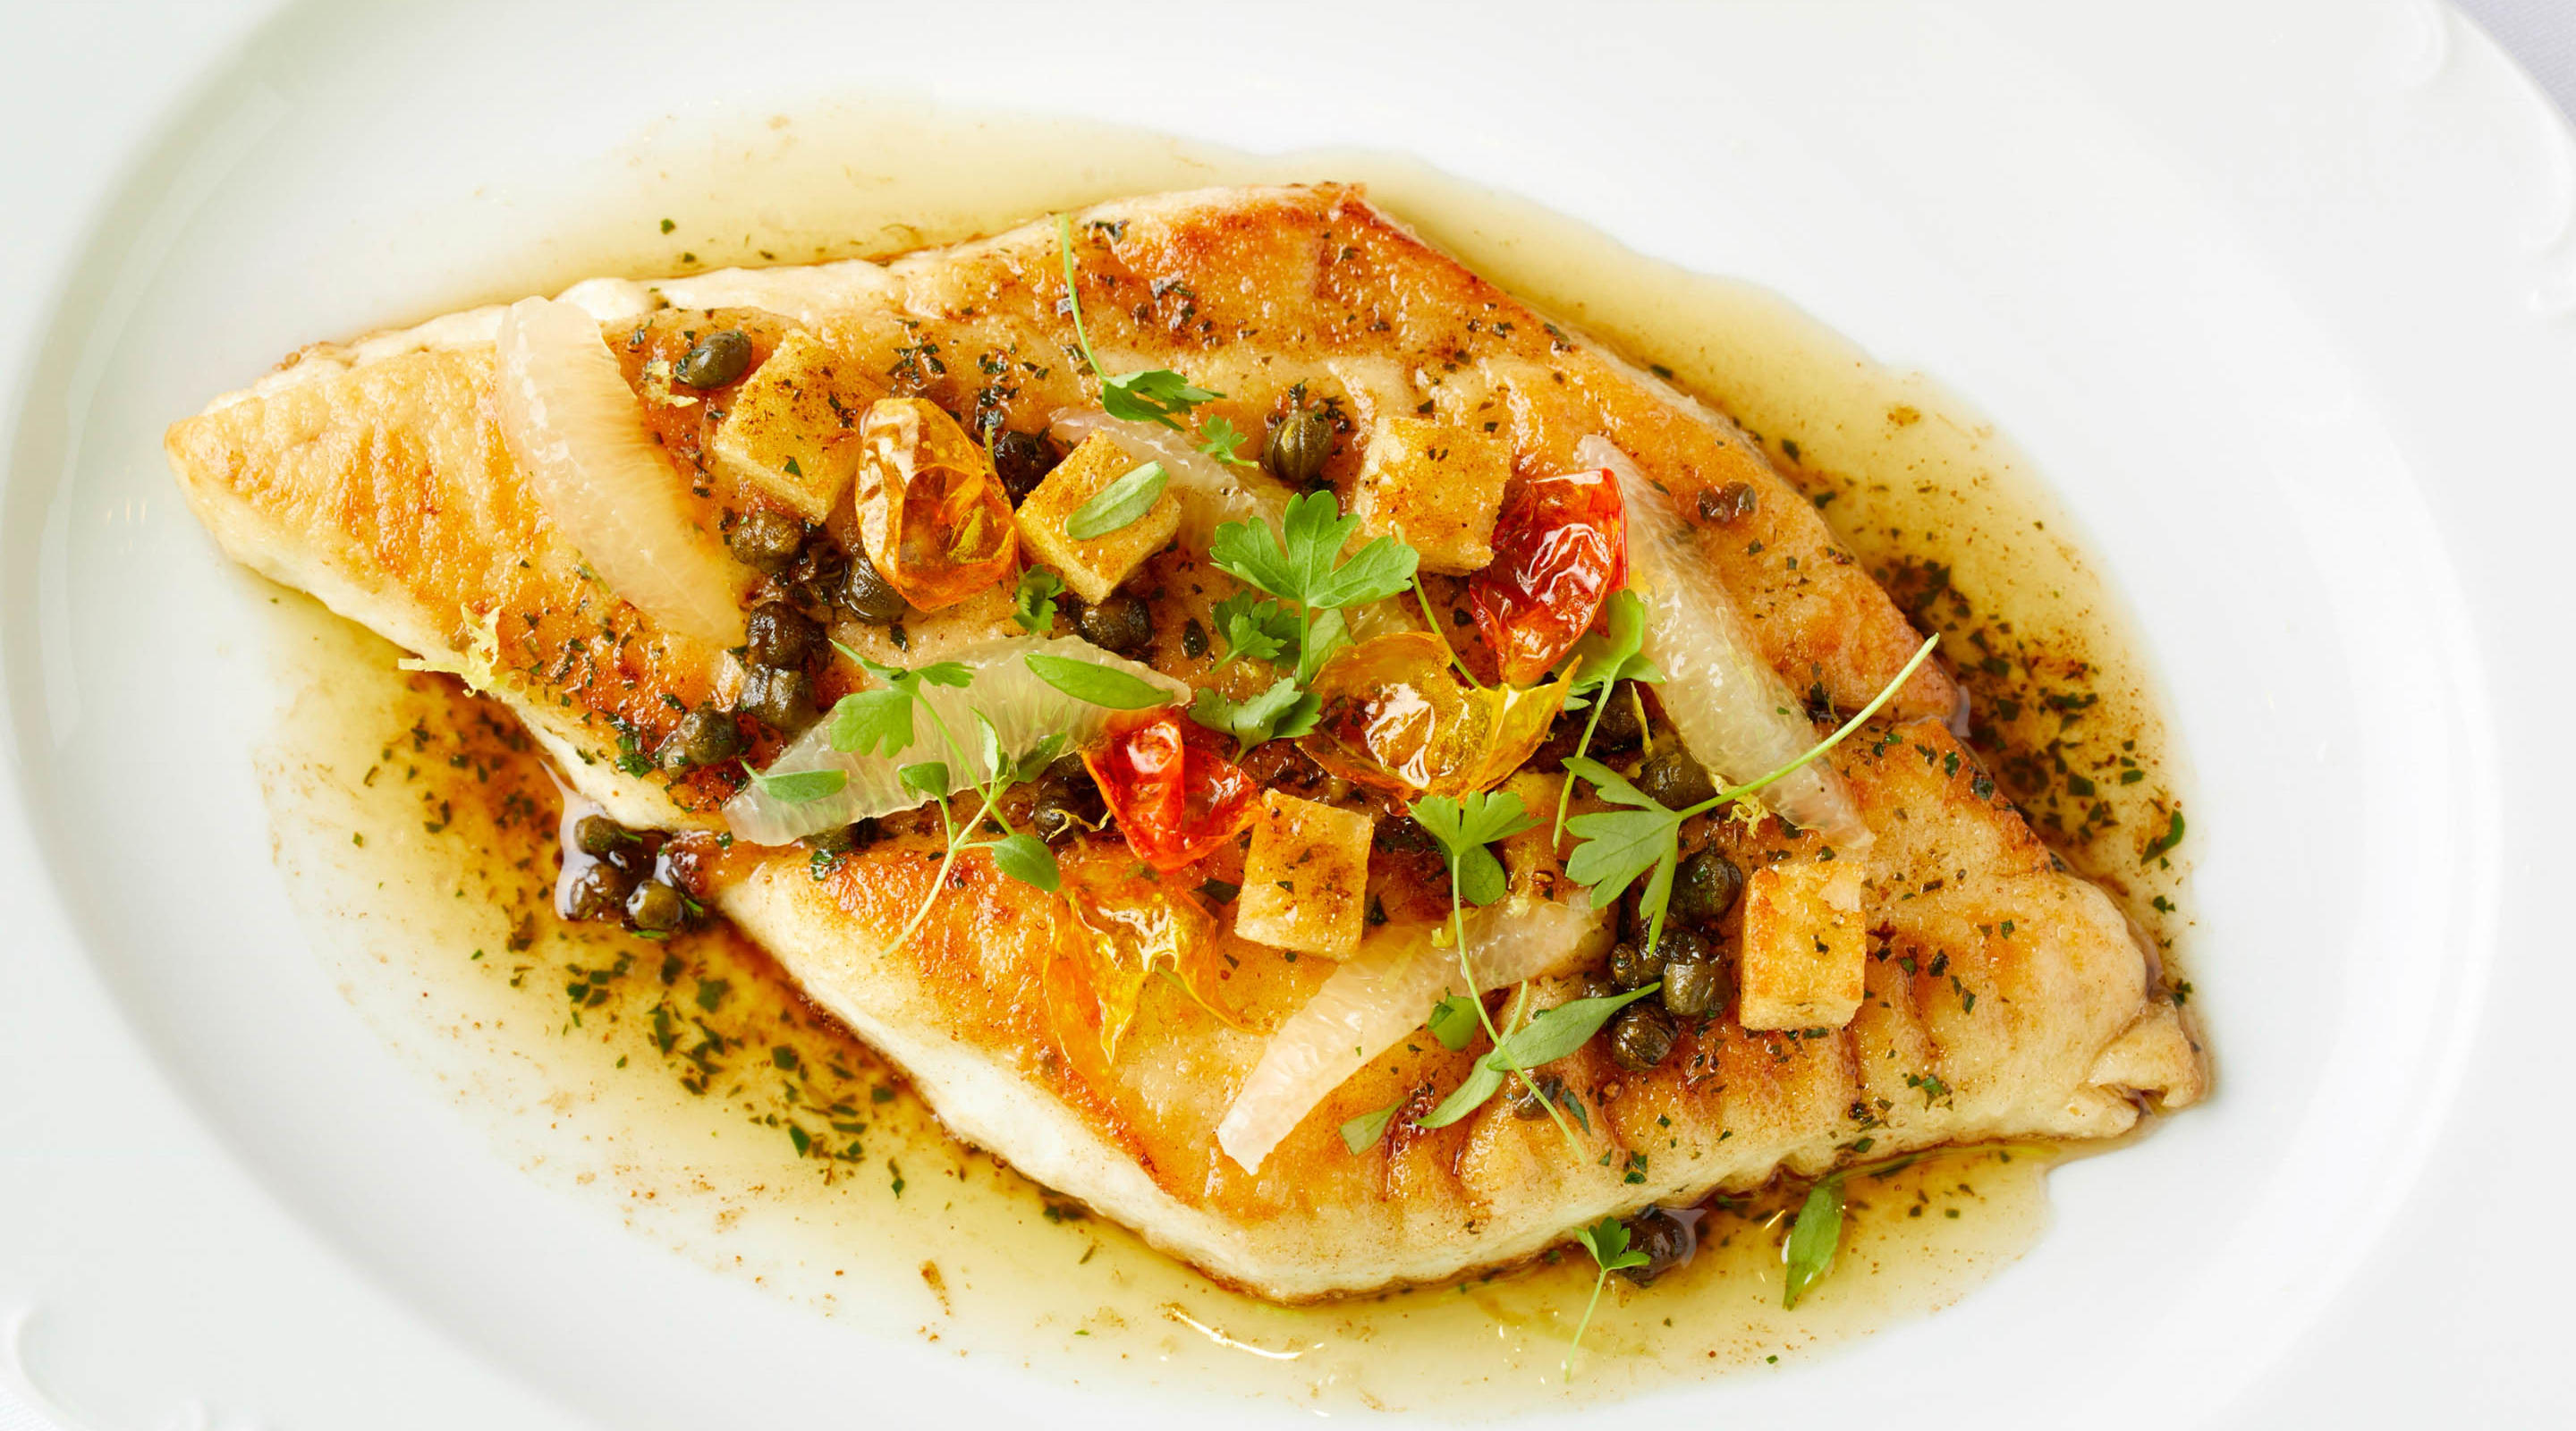 Our seafood options are seasoned just right.